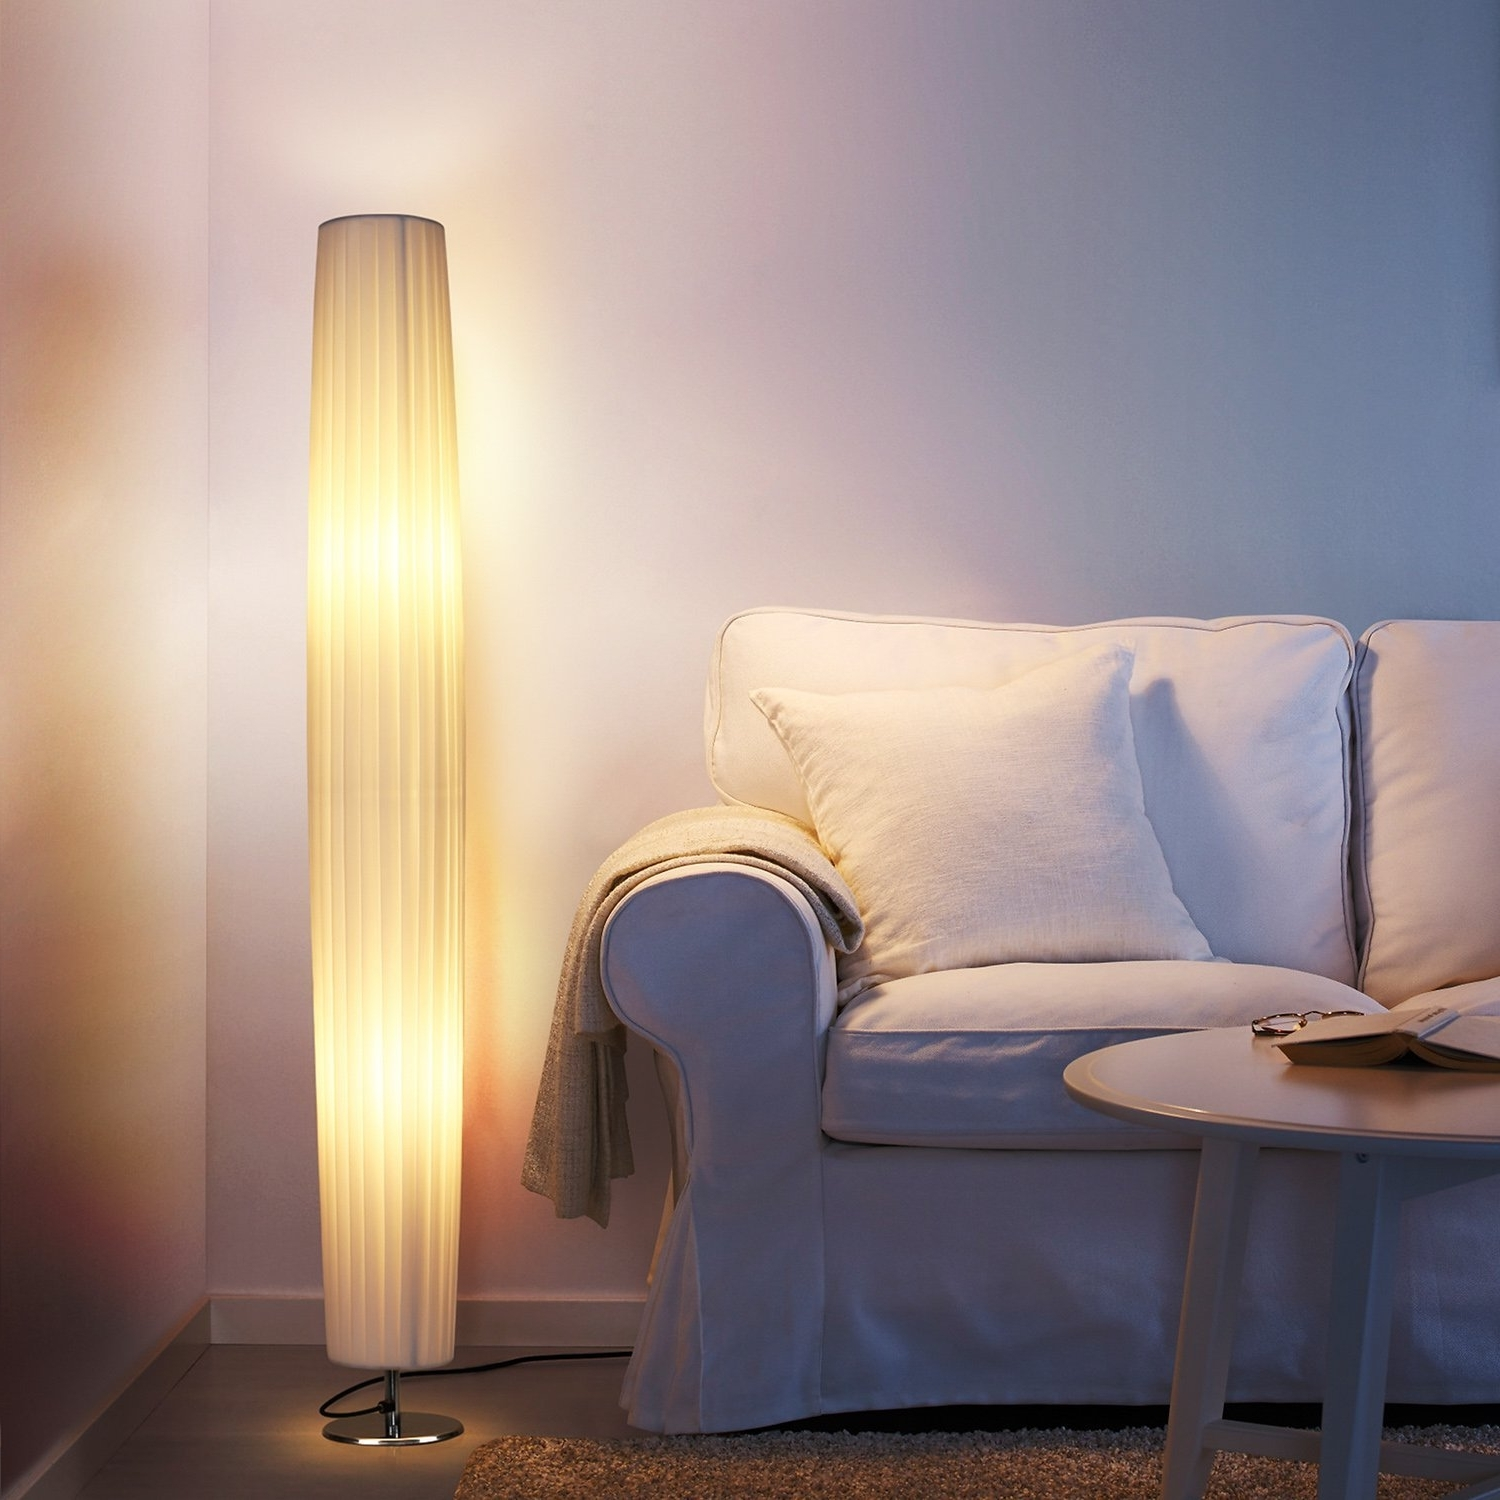 55 Most Unbeatable Table Lamps Amazon Grey Bedside Battery Powered Intended For Most Up To Date Ceramic Living Room Table Lamps (View 10 of 15)